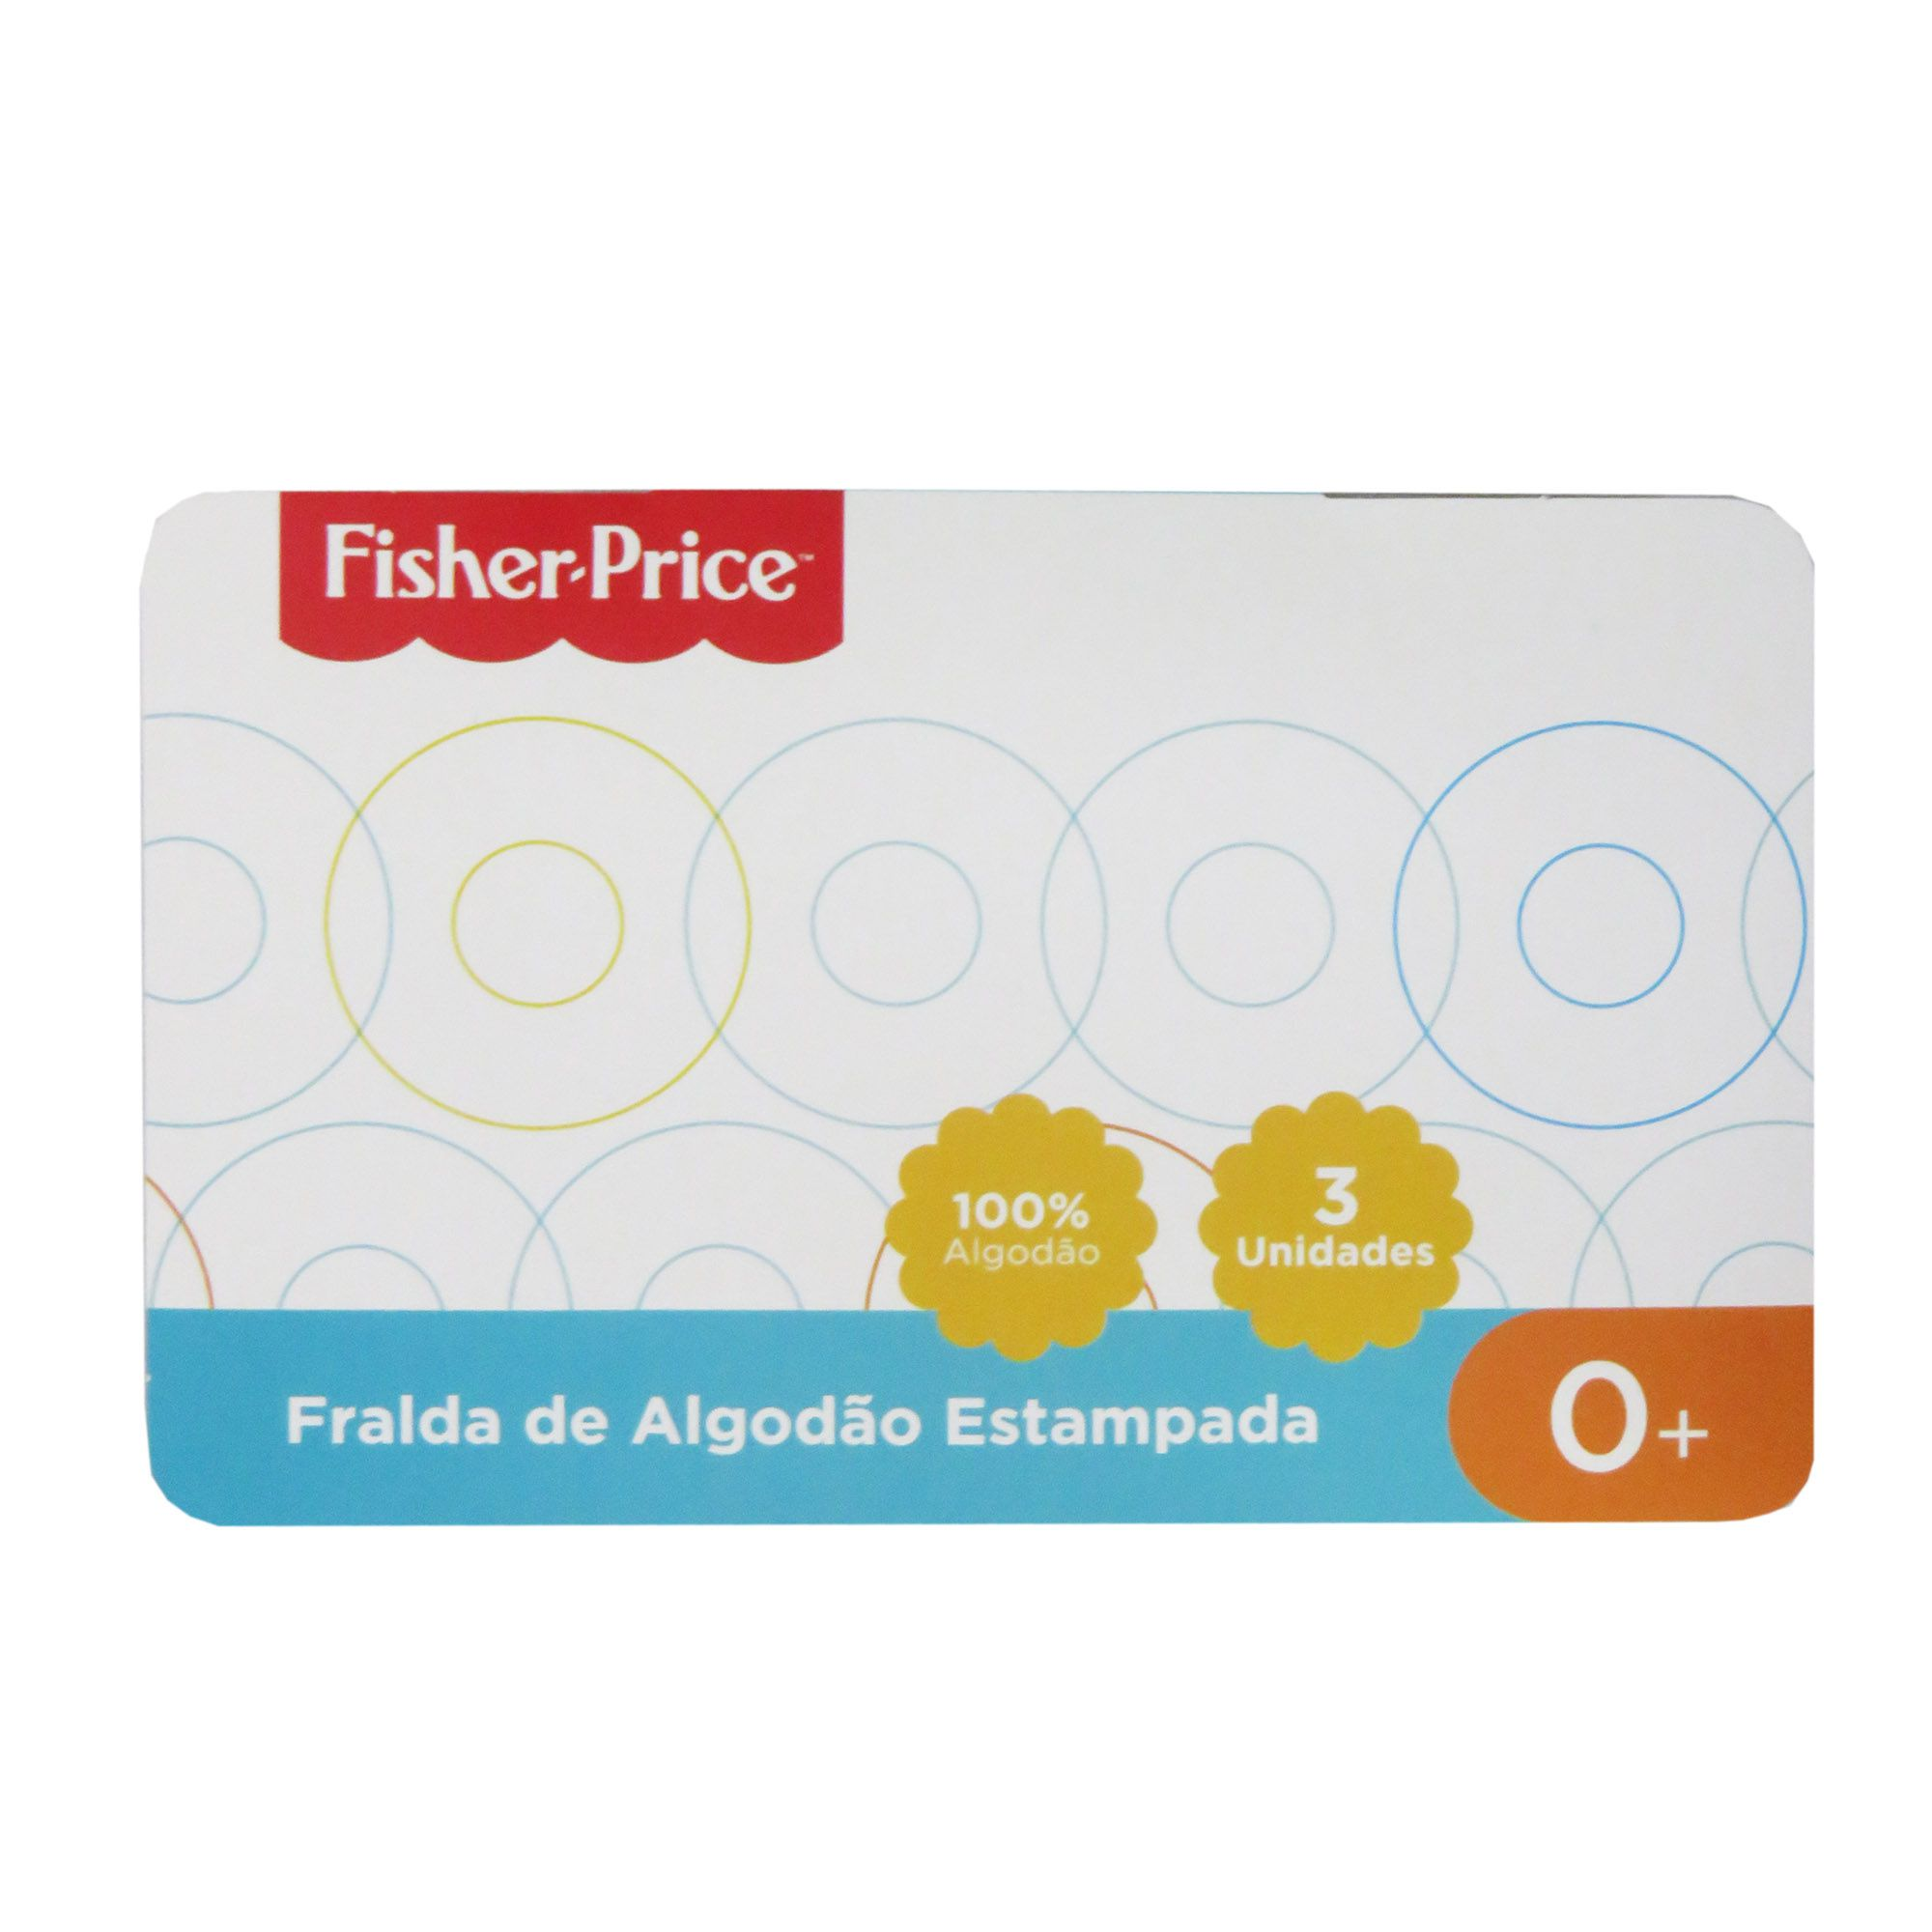 Fralda Incomfral Fisher-Price - Estampada